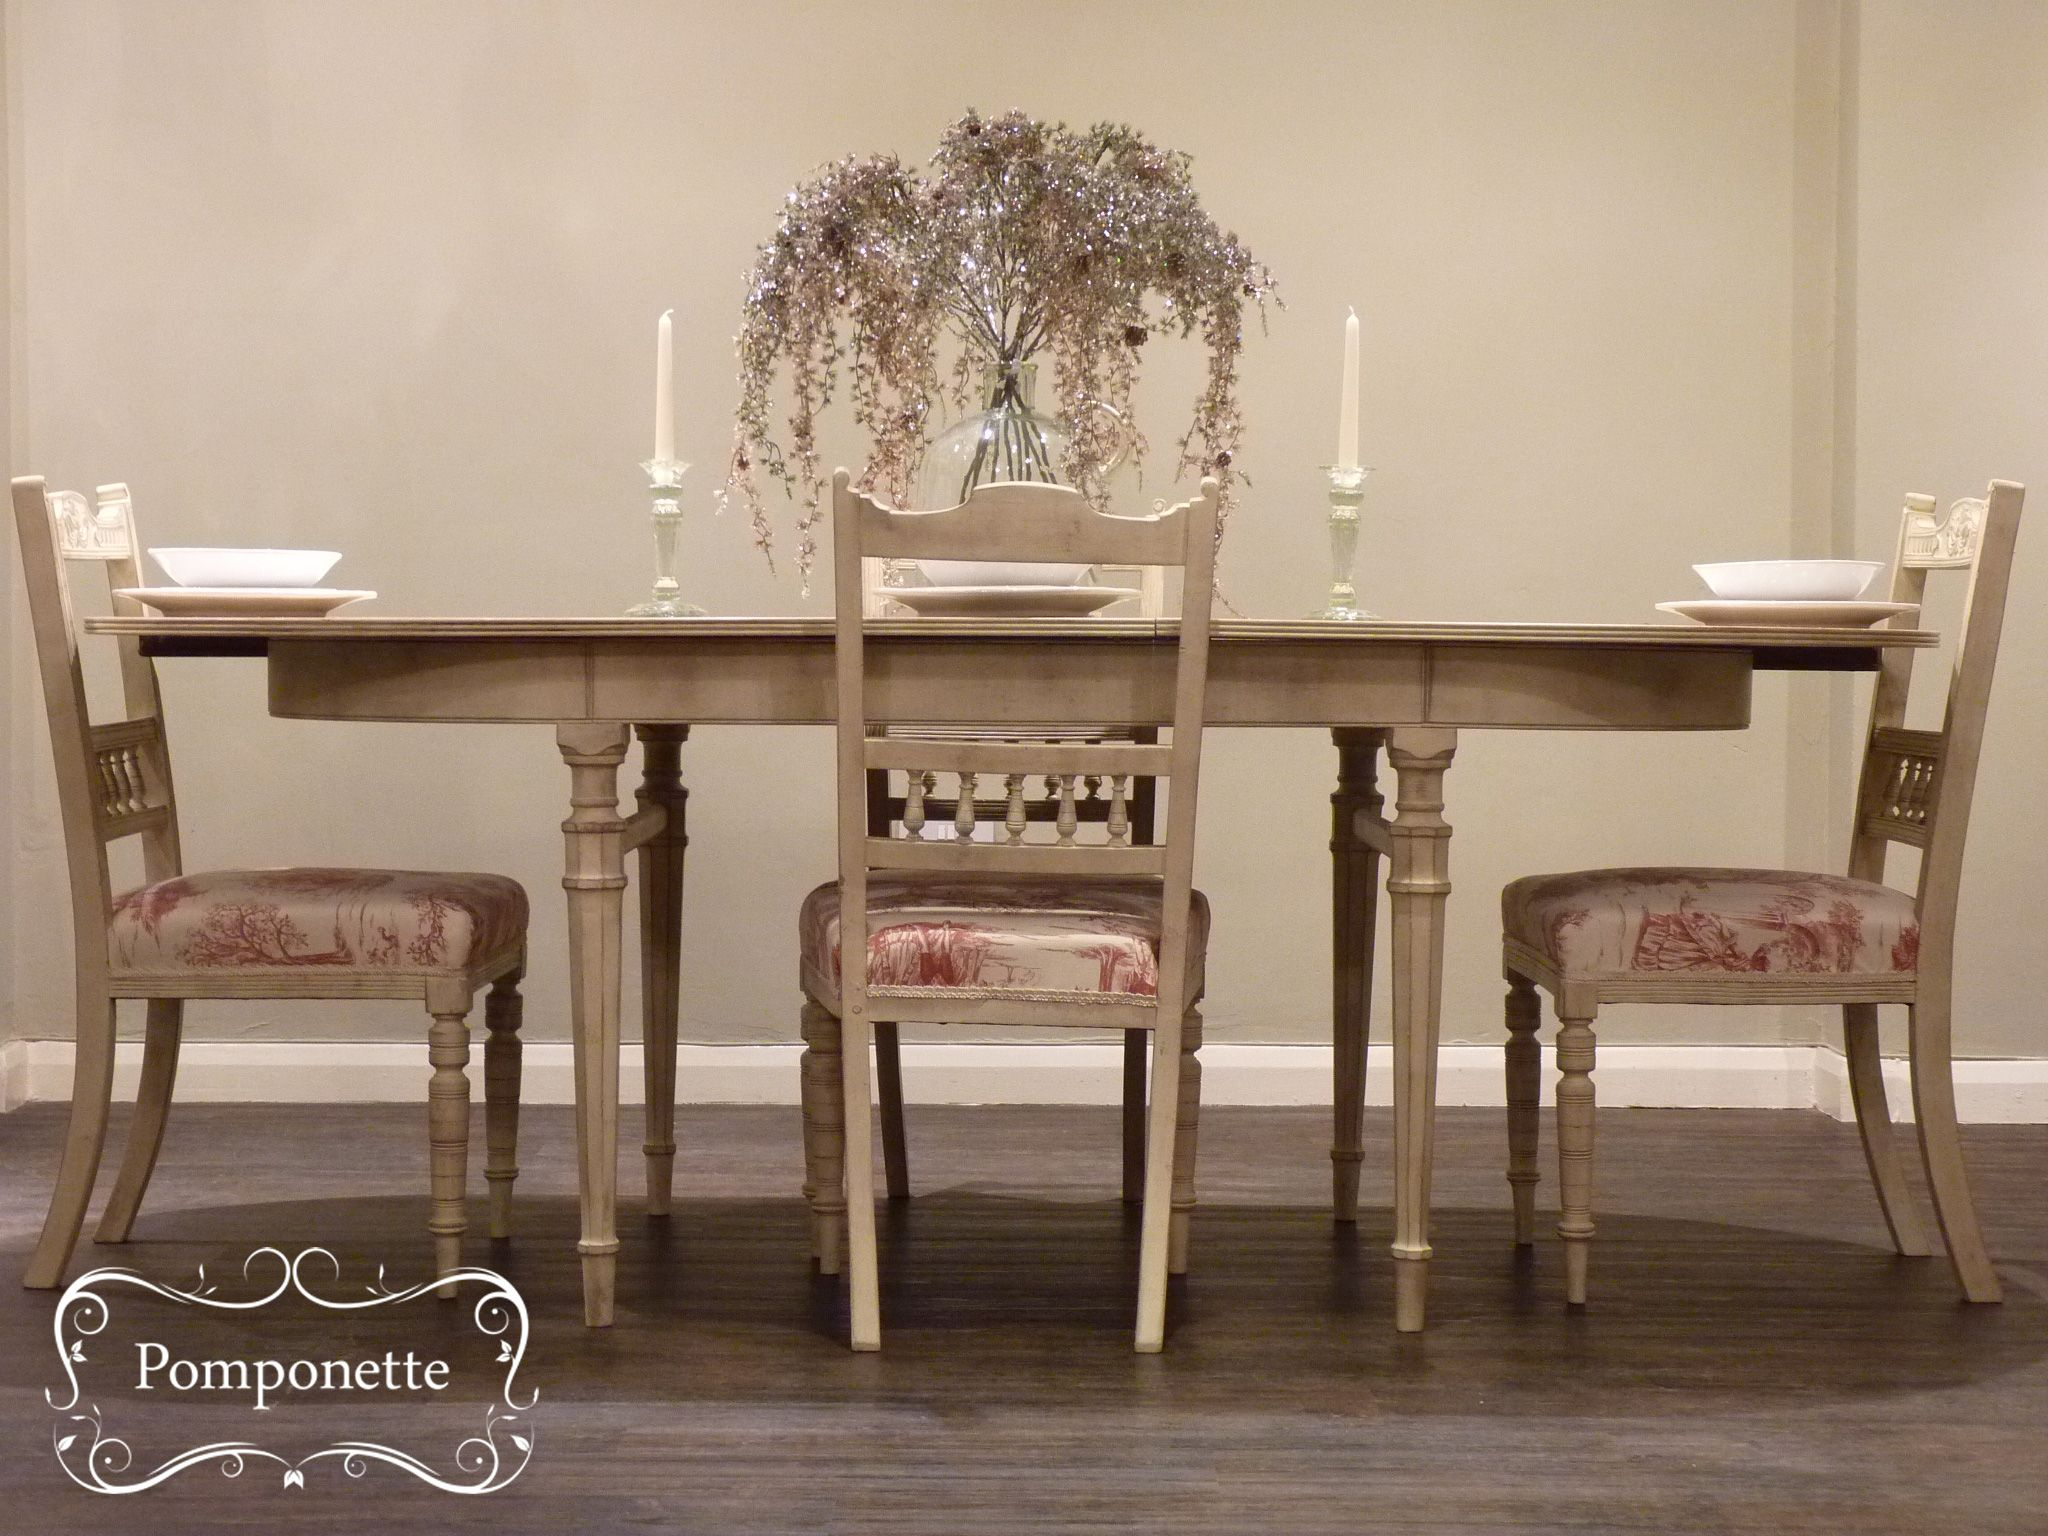 Extendable Dining Table Chairs Chalk Paint By Annie Sloan Stockists Trainers